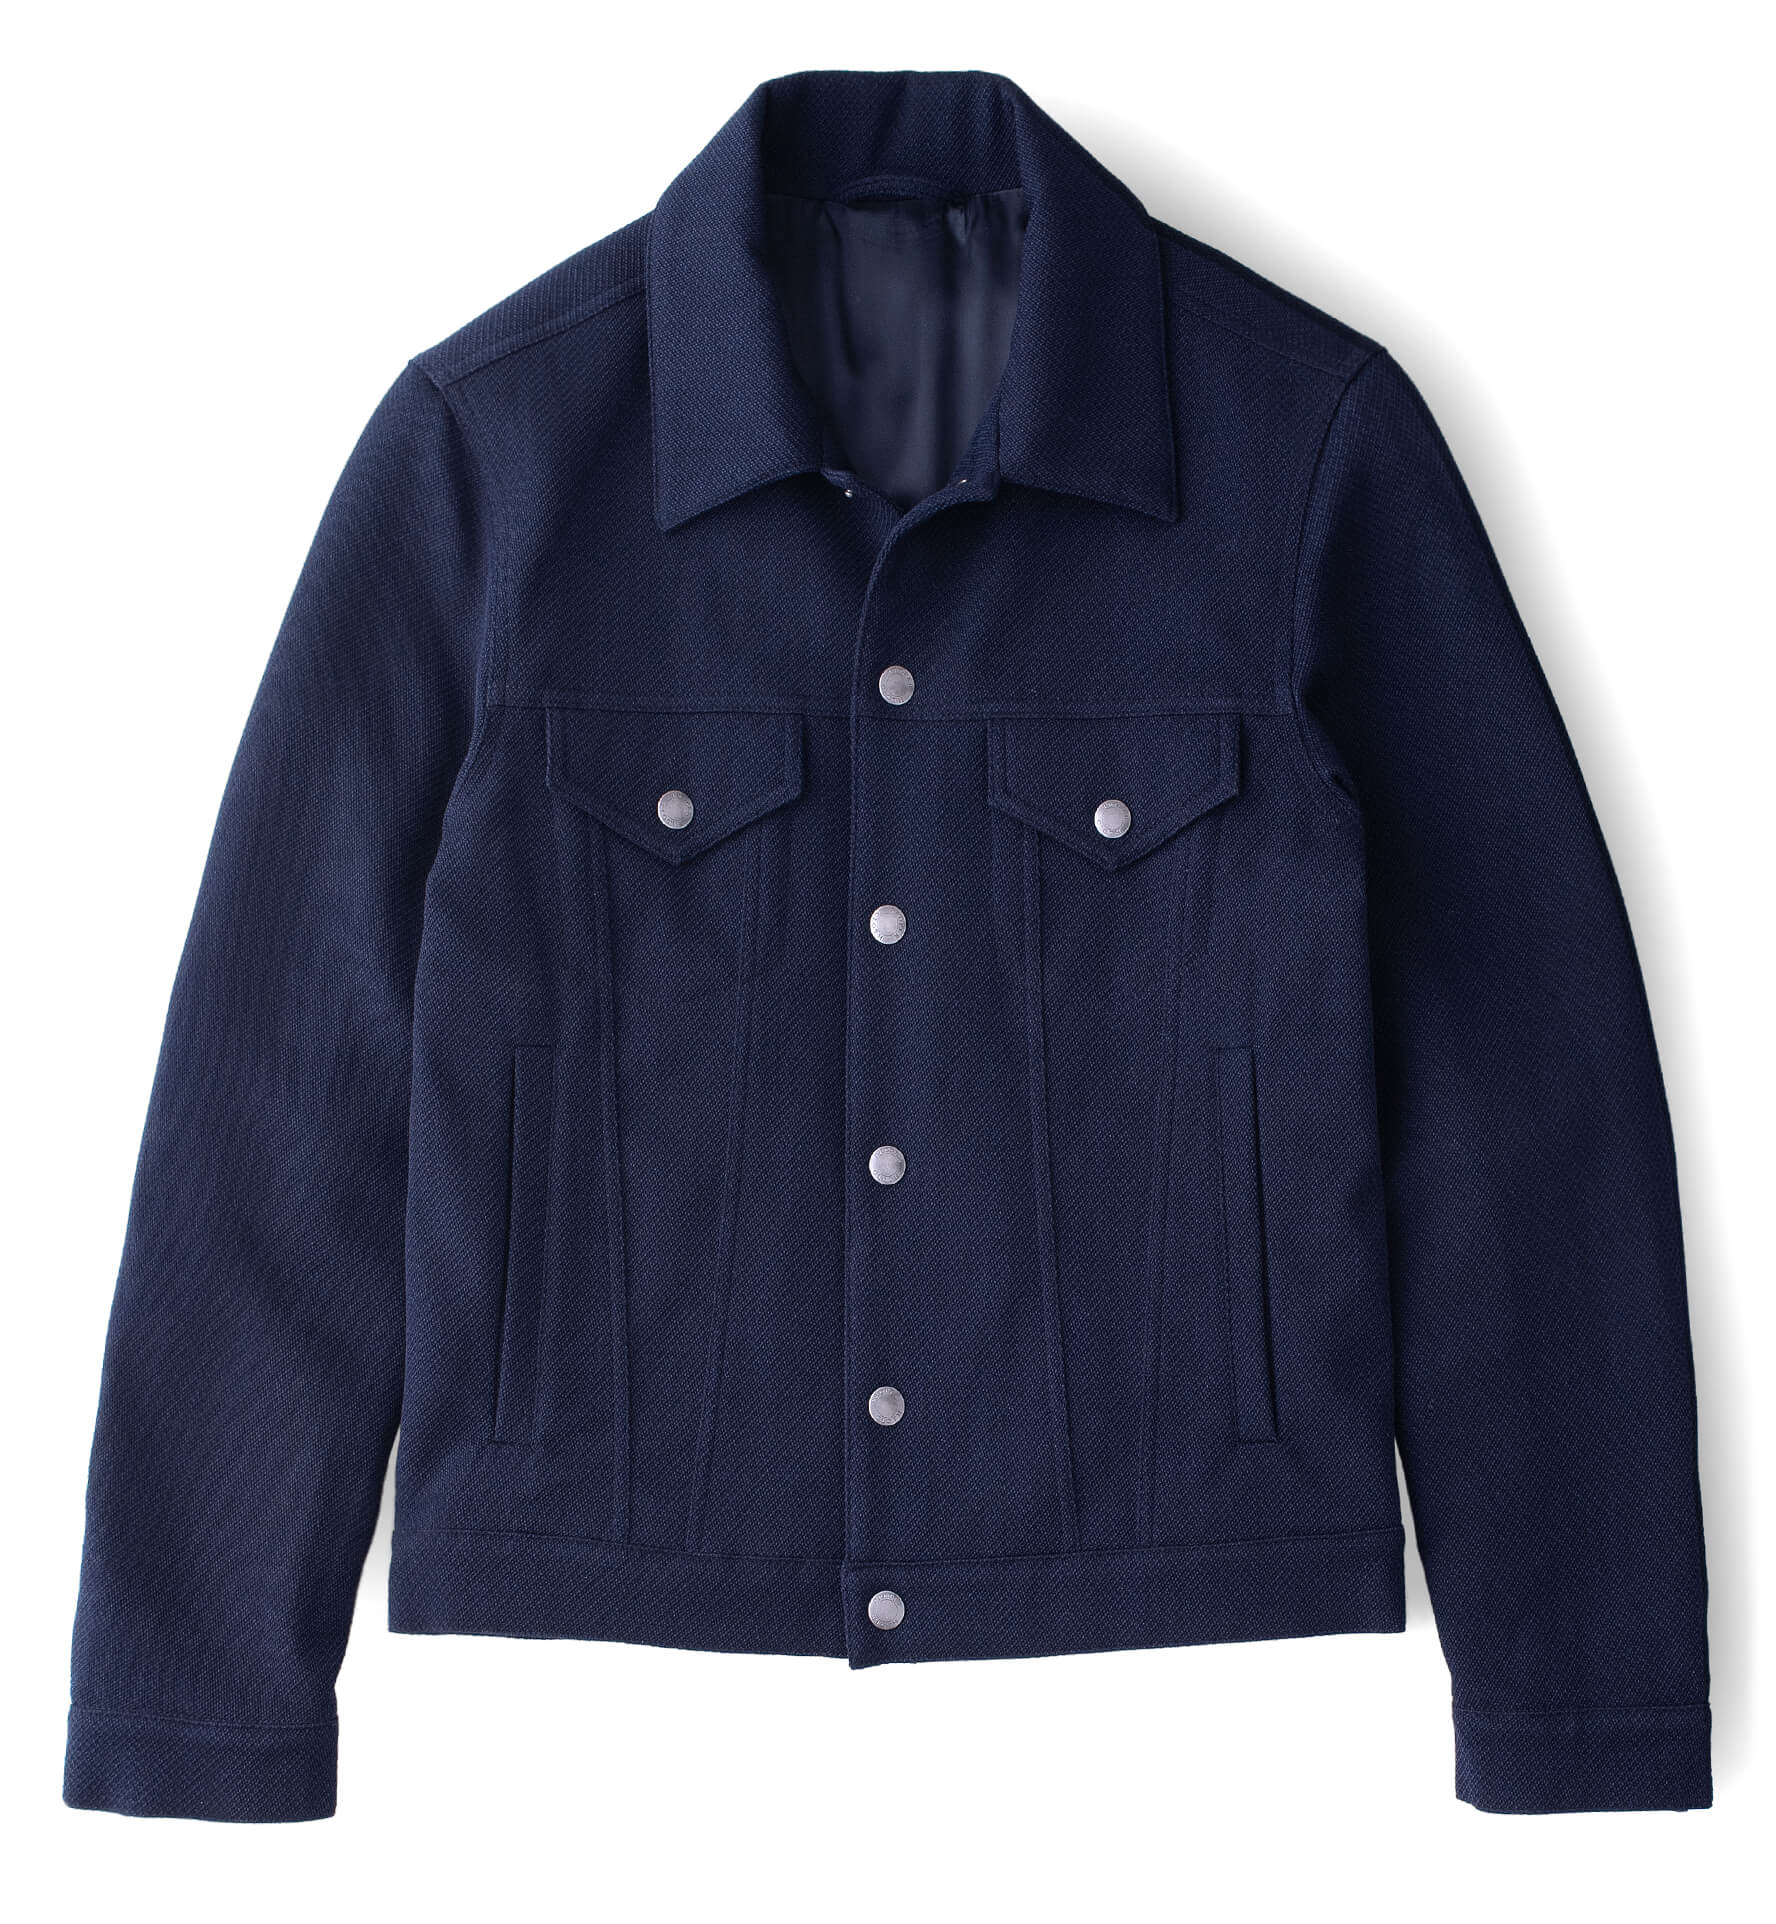 Zoom Image of Lafayette Navy Blue Wool and Cotton Trucker Jacket